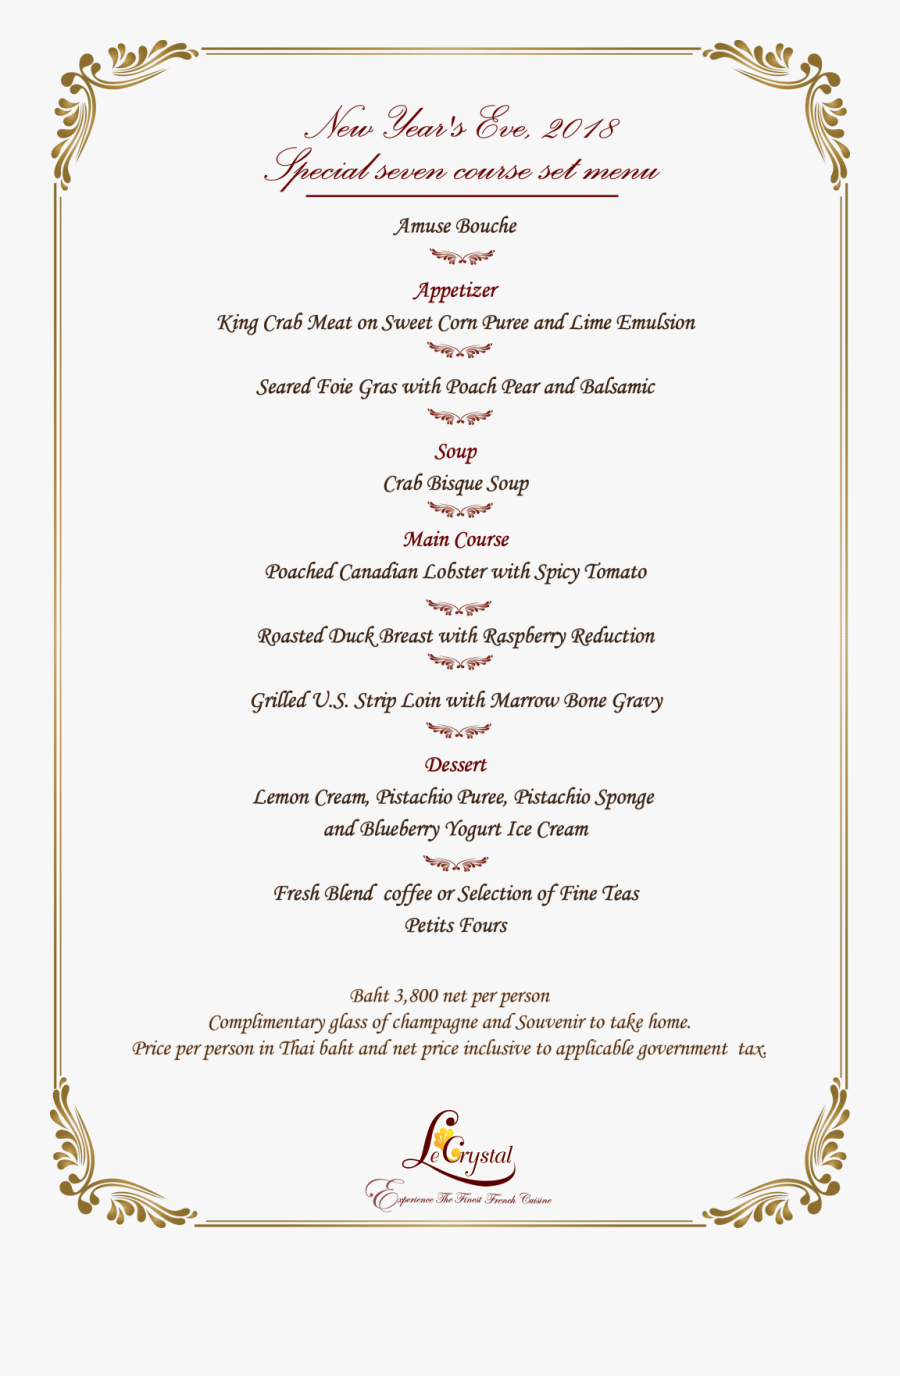 Transparent New Year Eve Png - New Year Menu 2019, Transparent Clipart